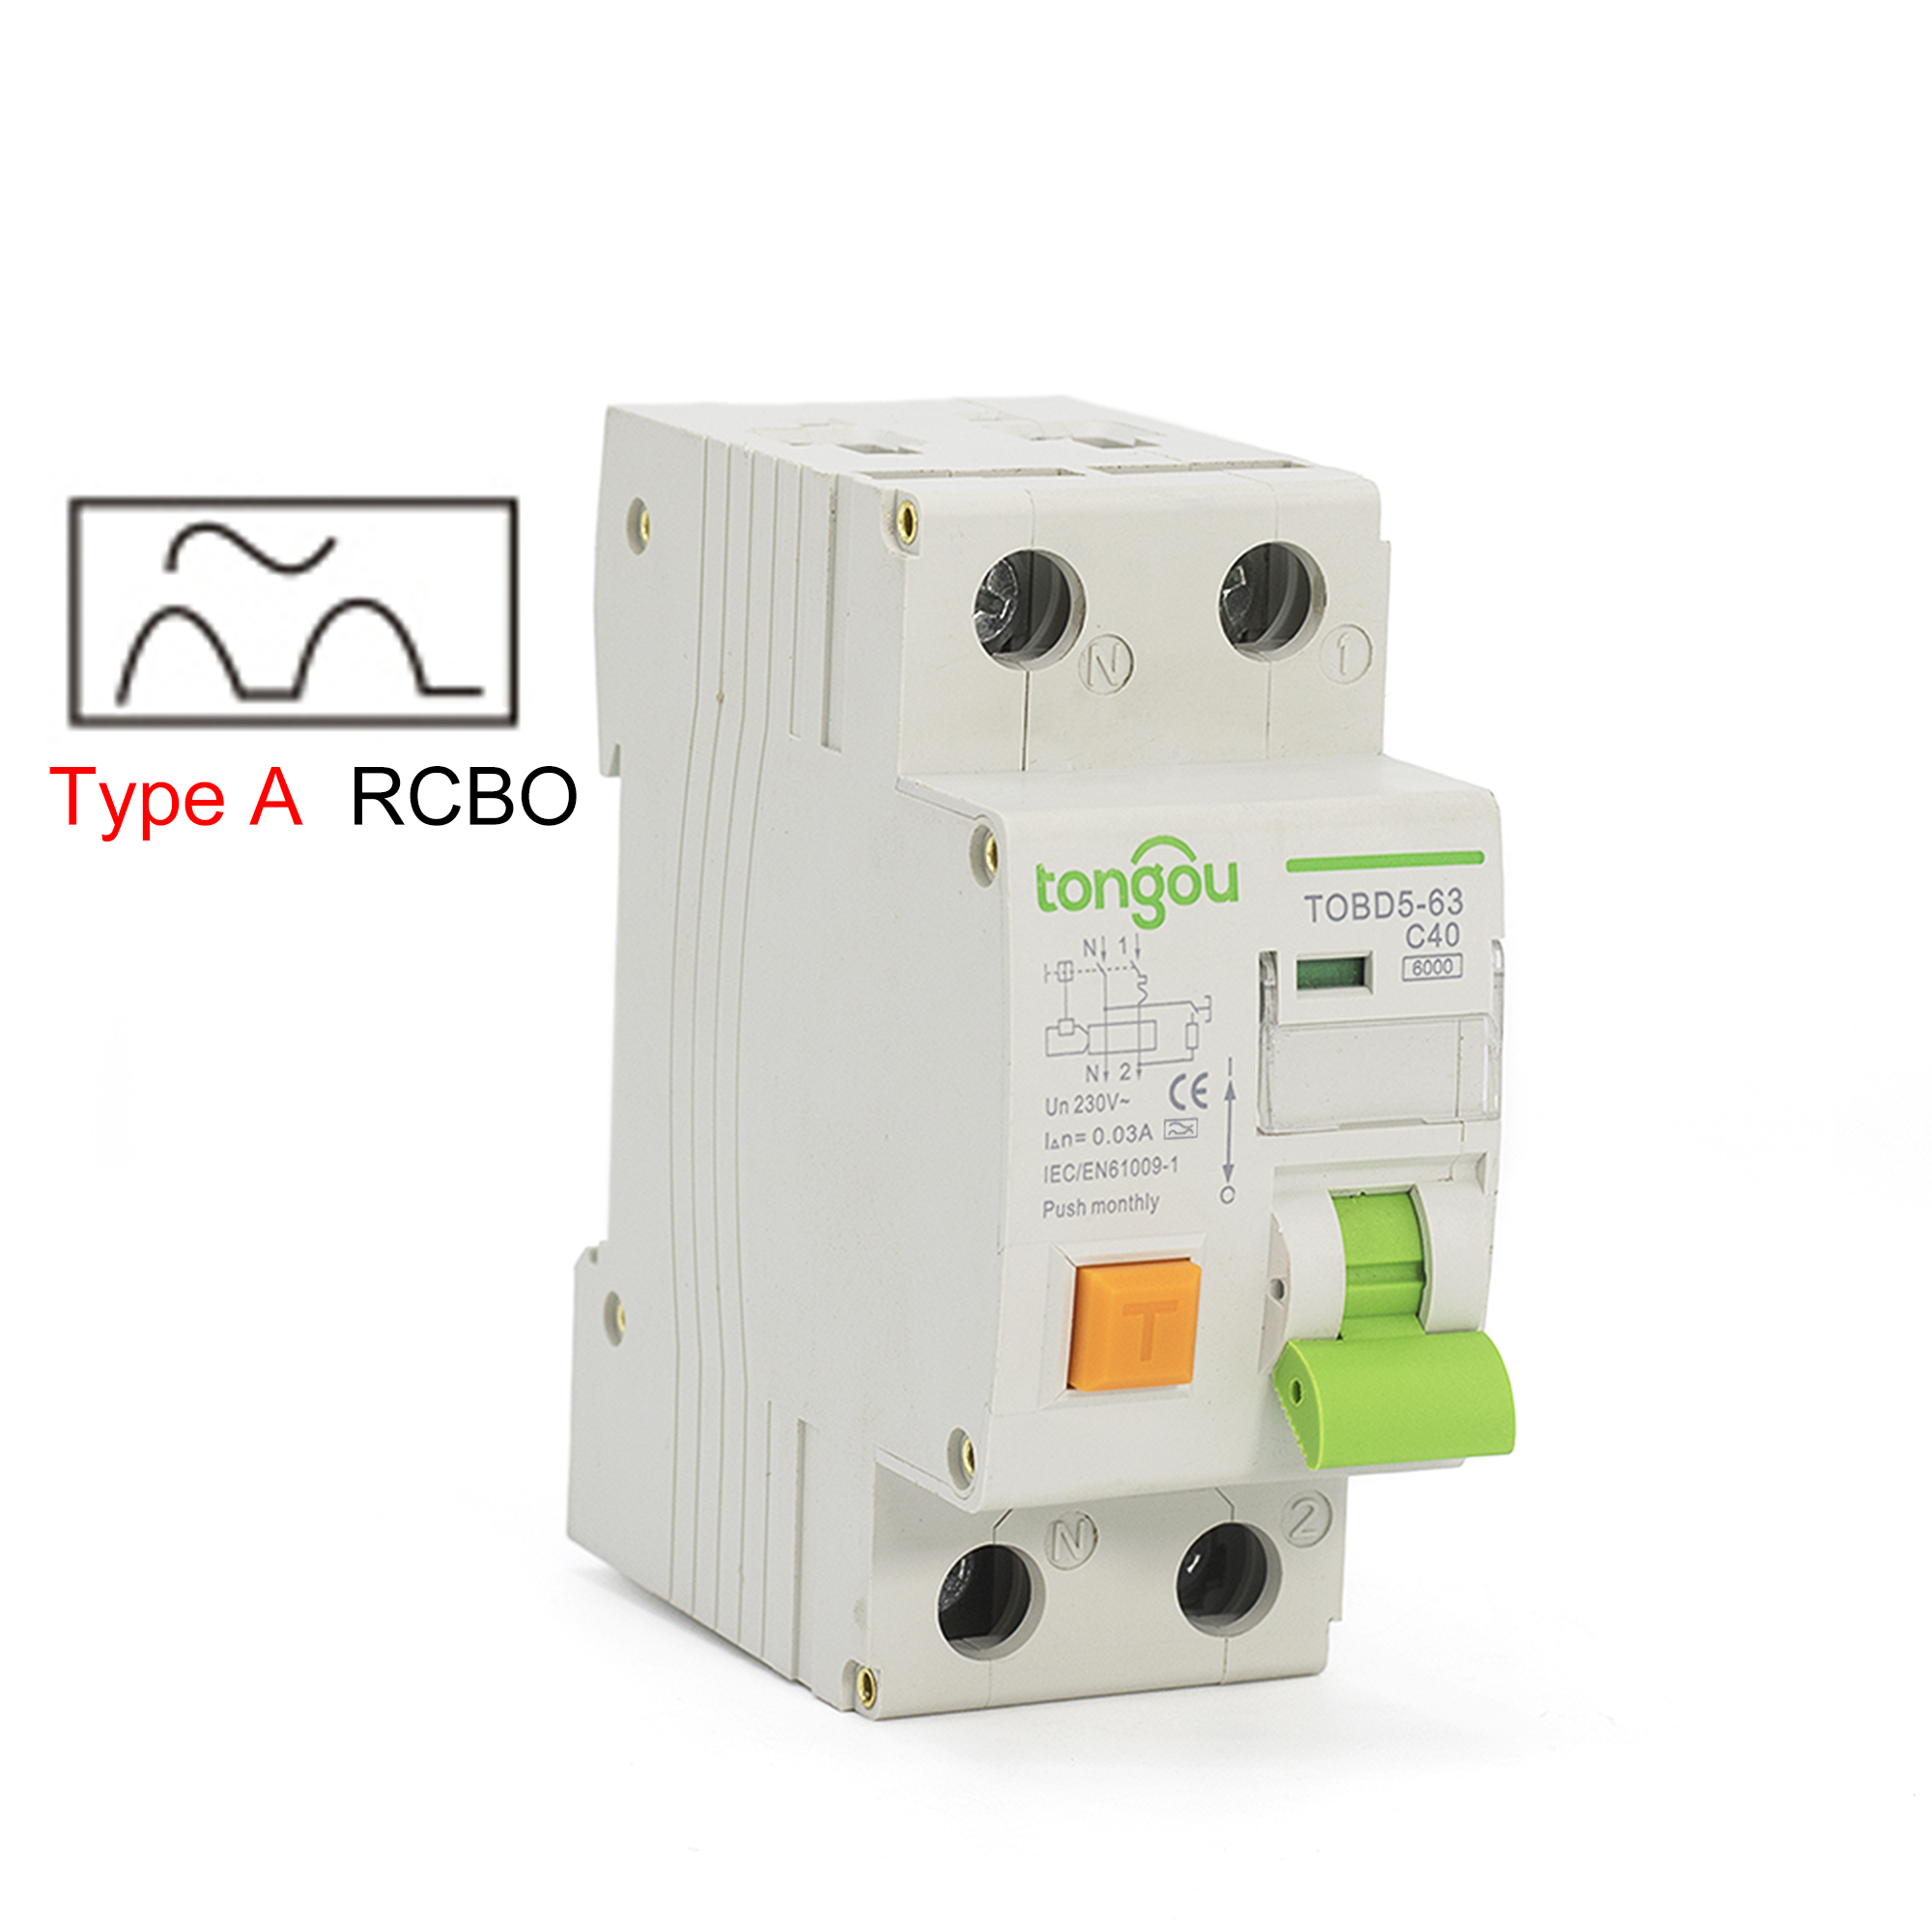 Type A 6KA RCBO 10A 16A 25A 32A 40A Electromechanical Residual Current Circuit Breaker With Over Current and Leakage Protection